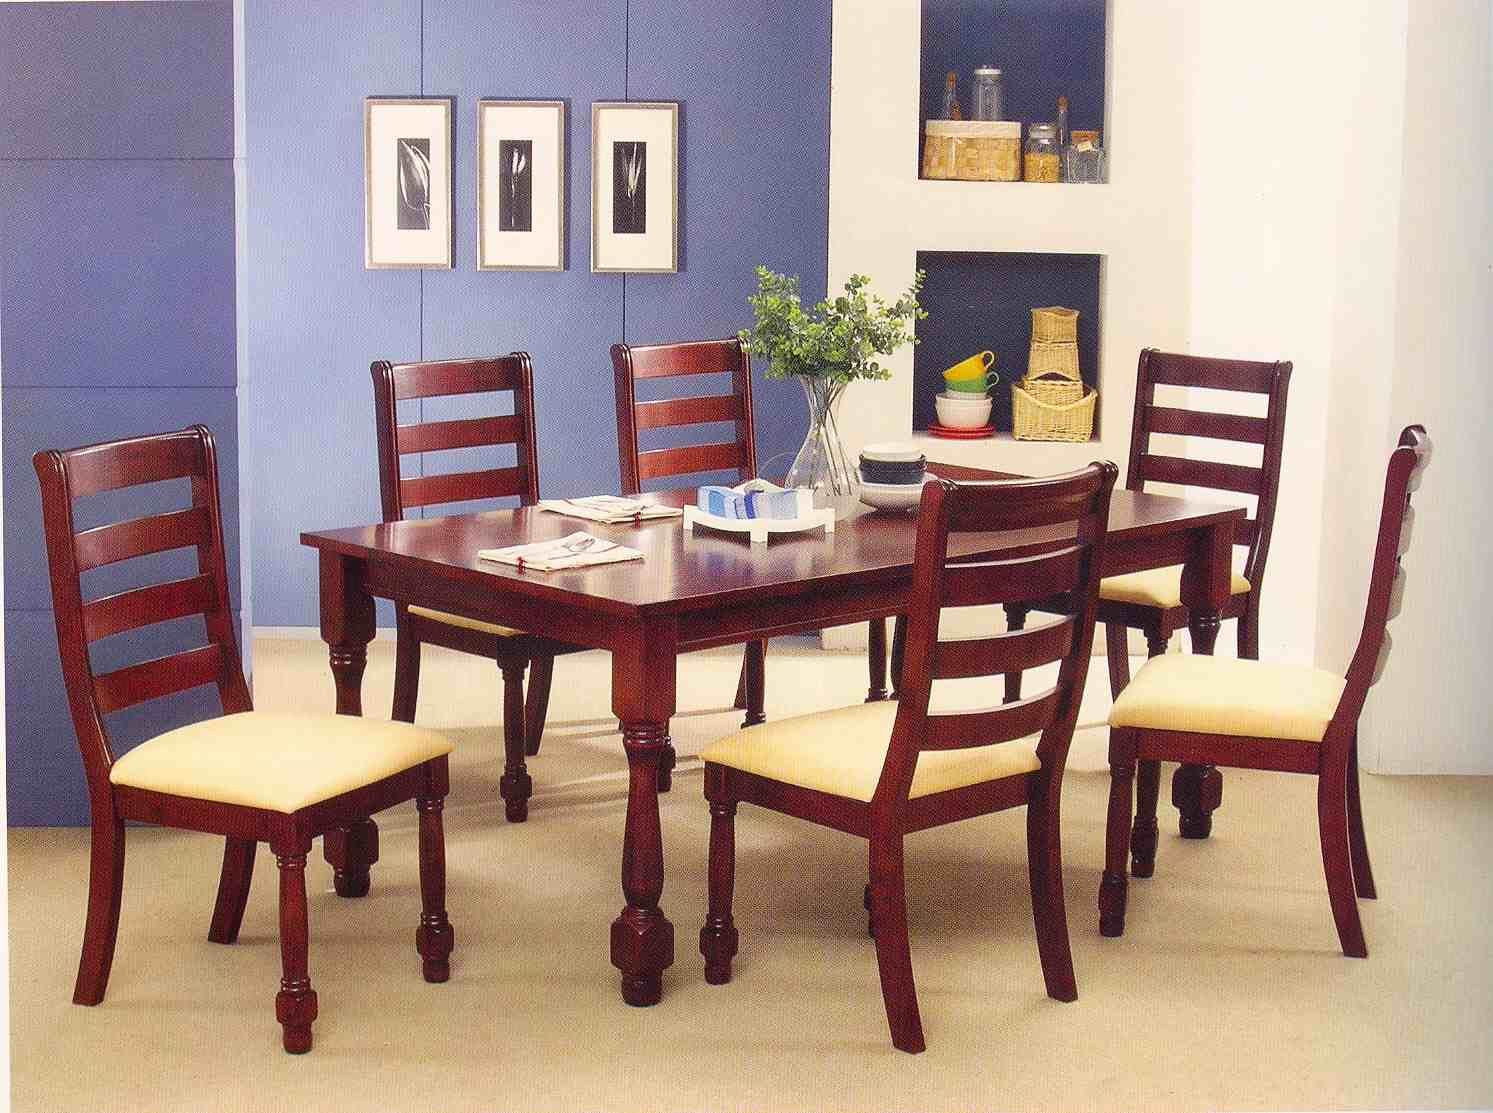 Dining Room Furniture Images طاولات سفرة Dining Tables 2014